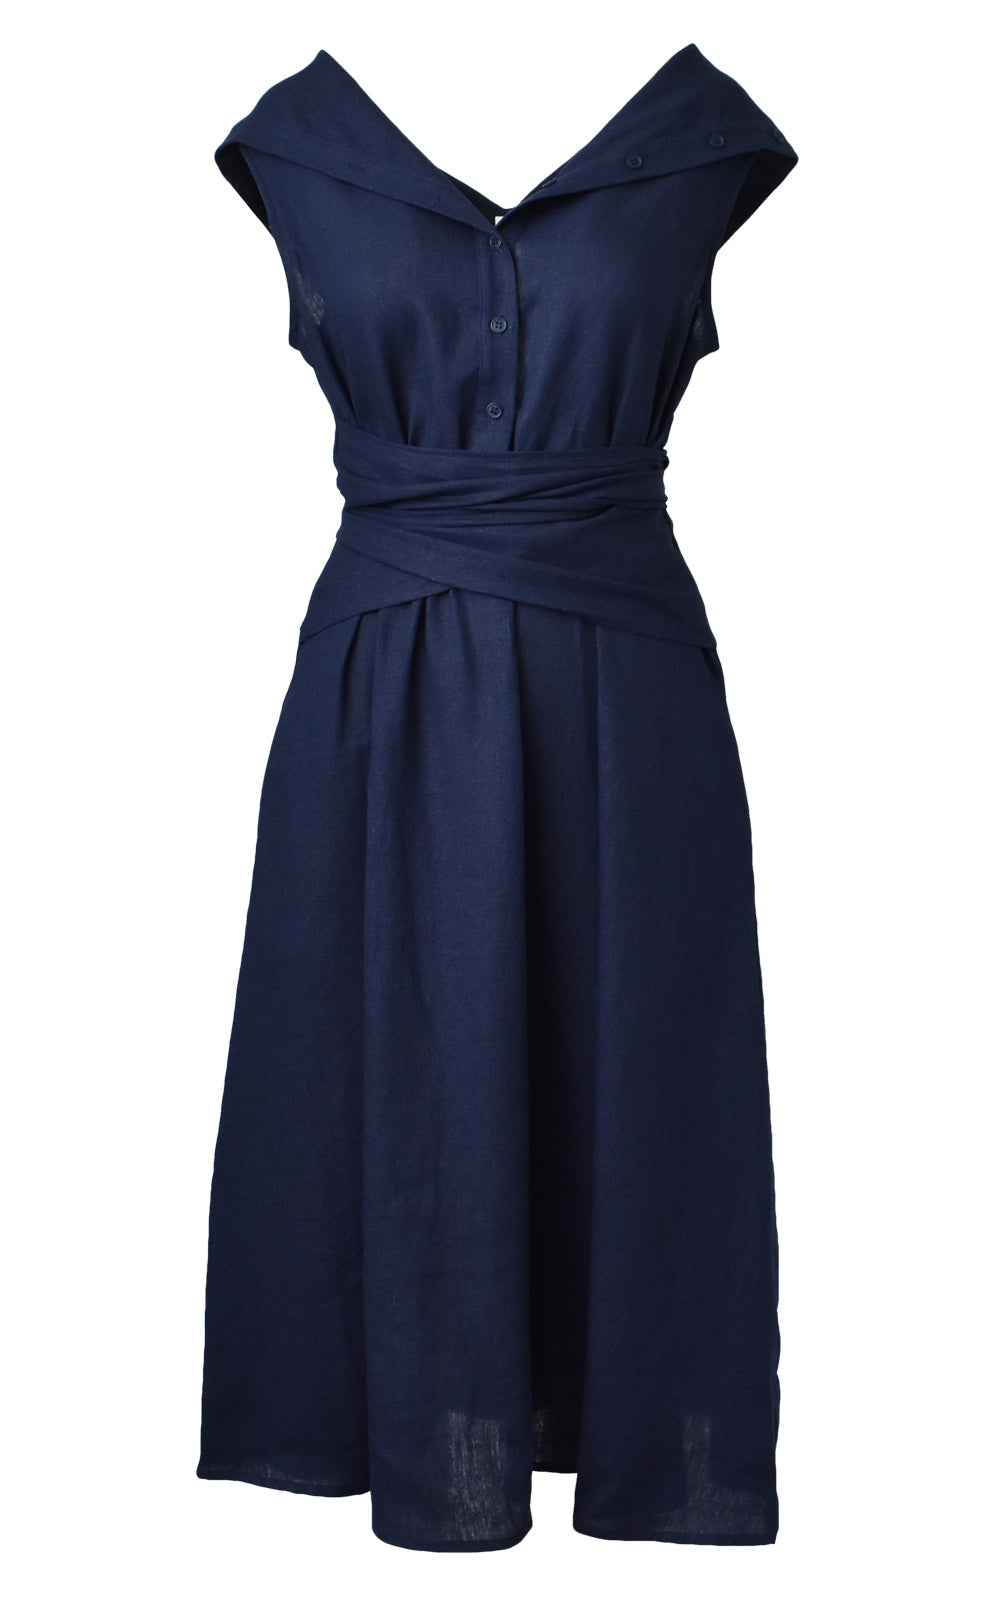 Amadi Octavia Wrap Tie Dress Navy